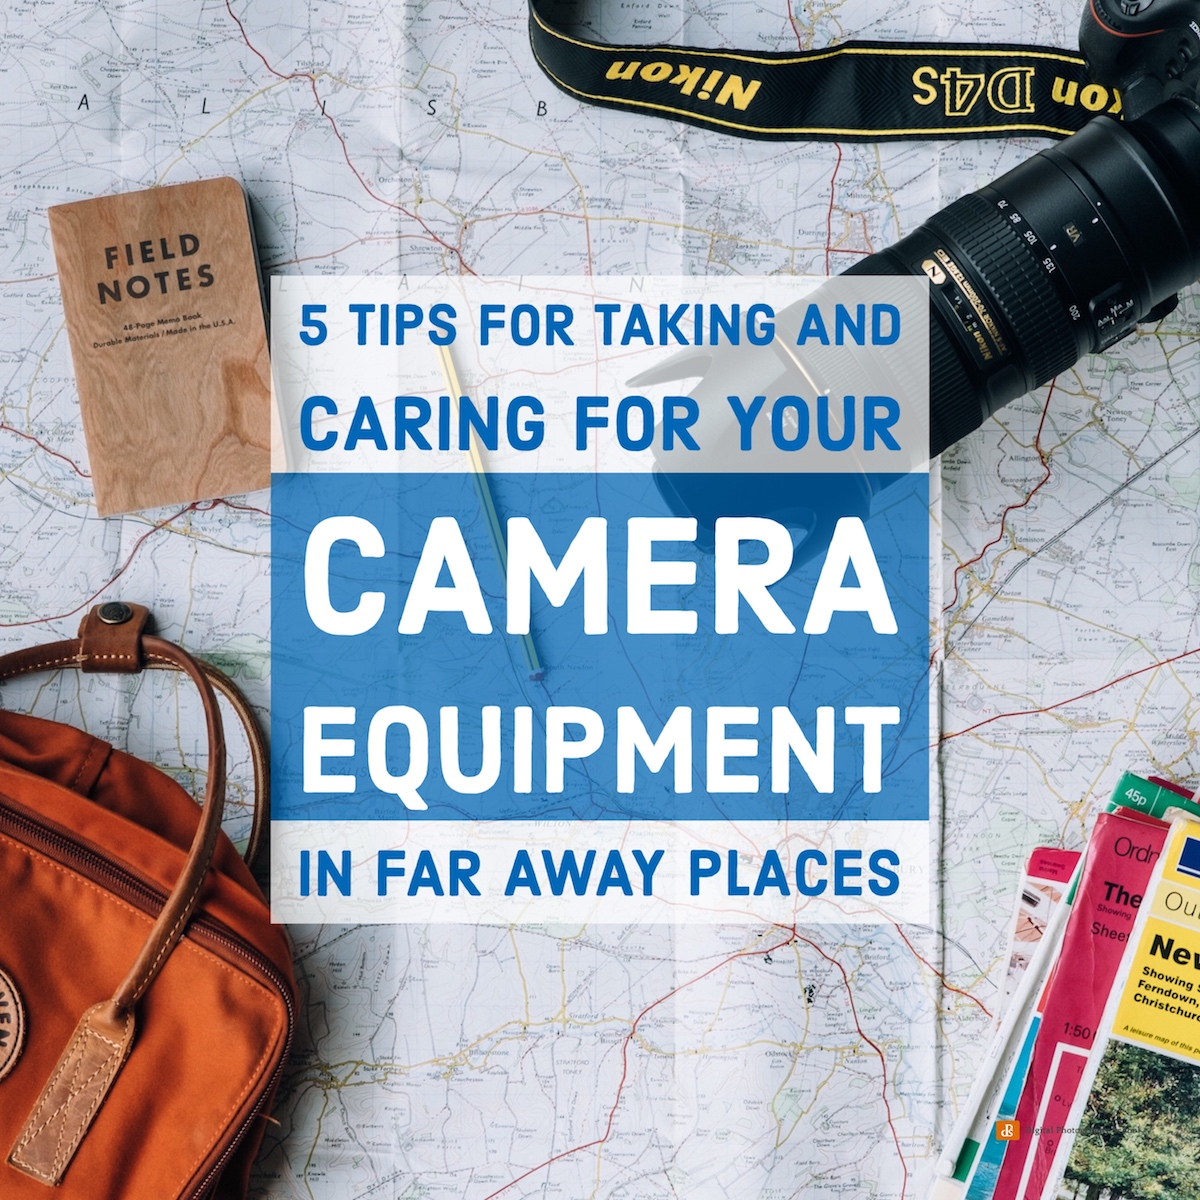 5 Tips for Taking and Caring for Your Camera Equipment in Far Away Places